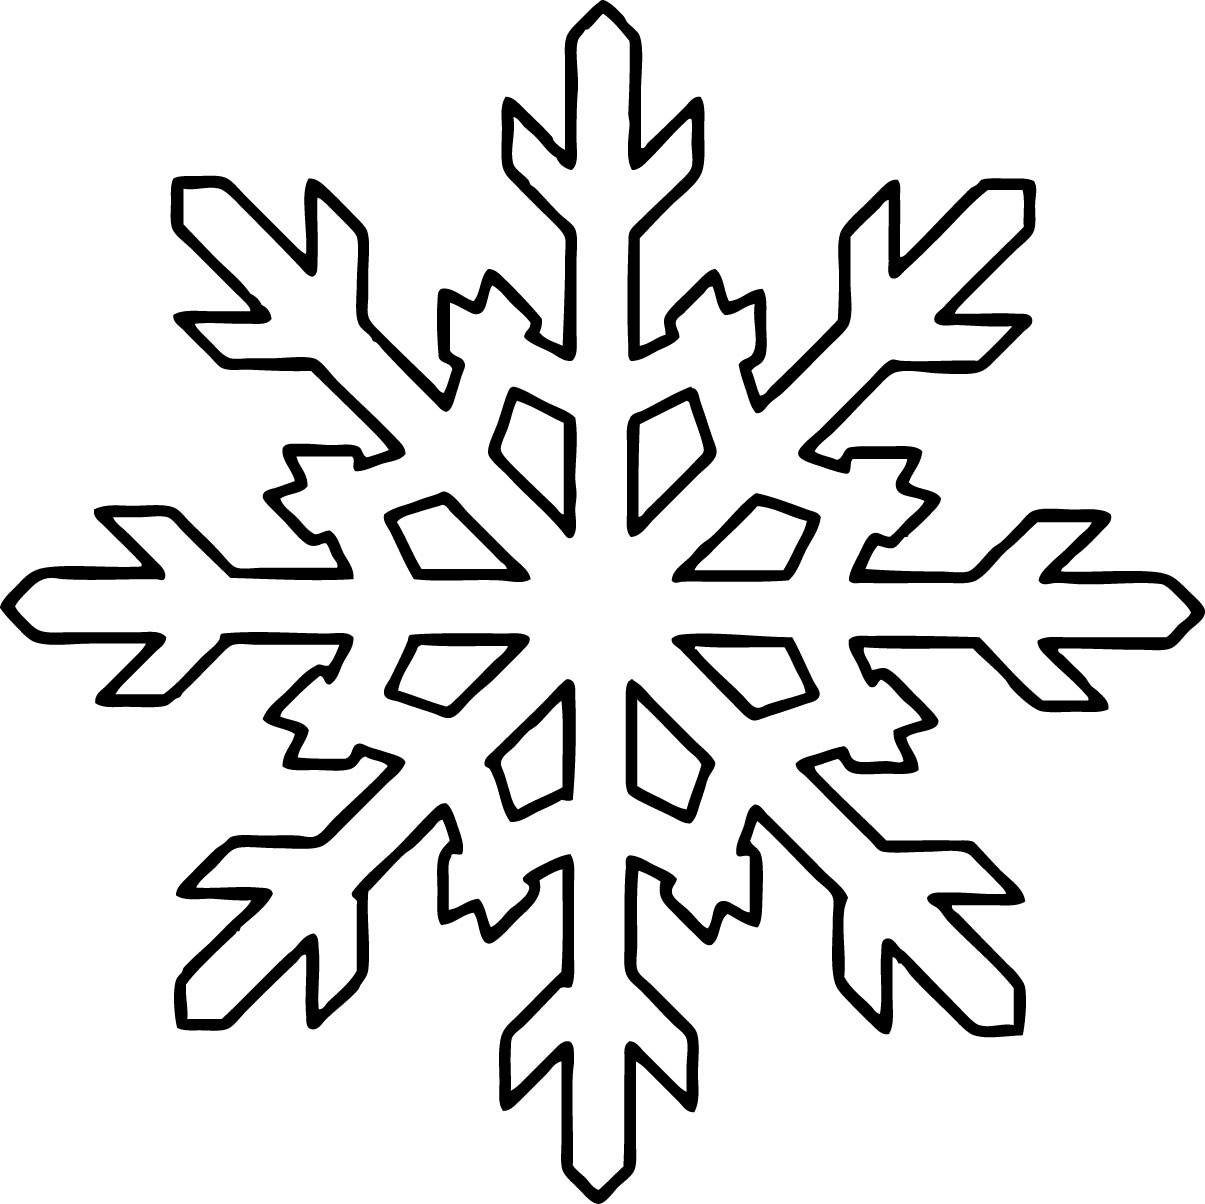 snowflake pictures to color top 25 winter snowflake coloring pages easy free and to snowflake pictures color